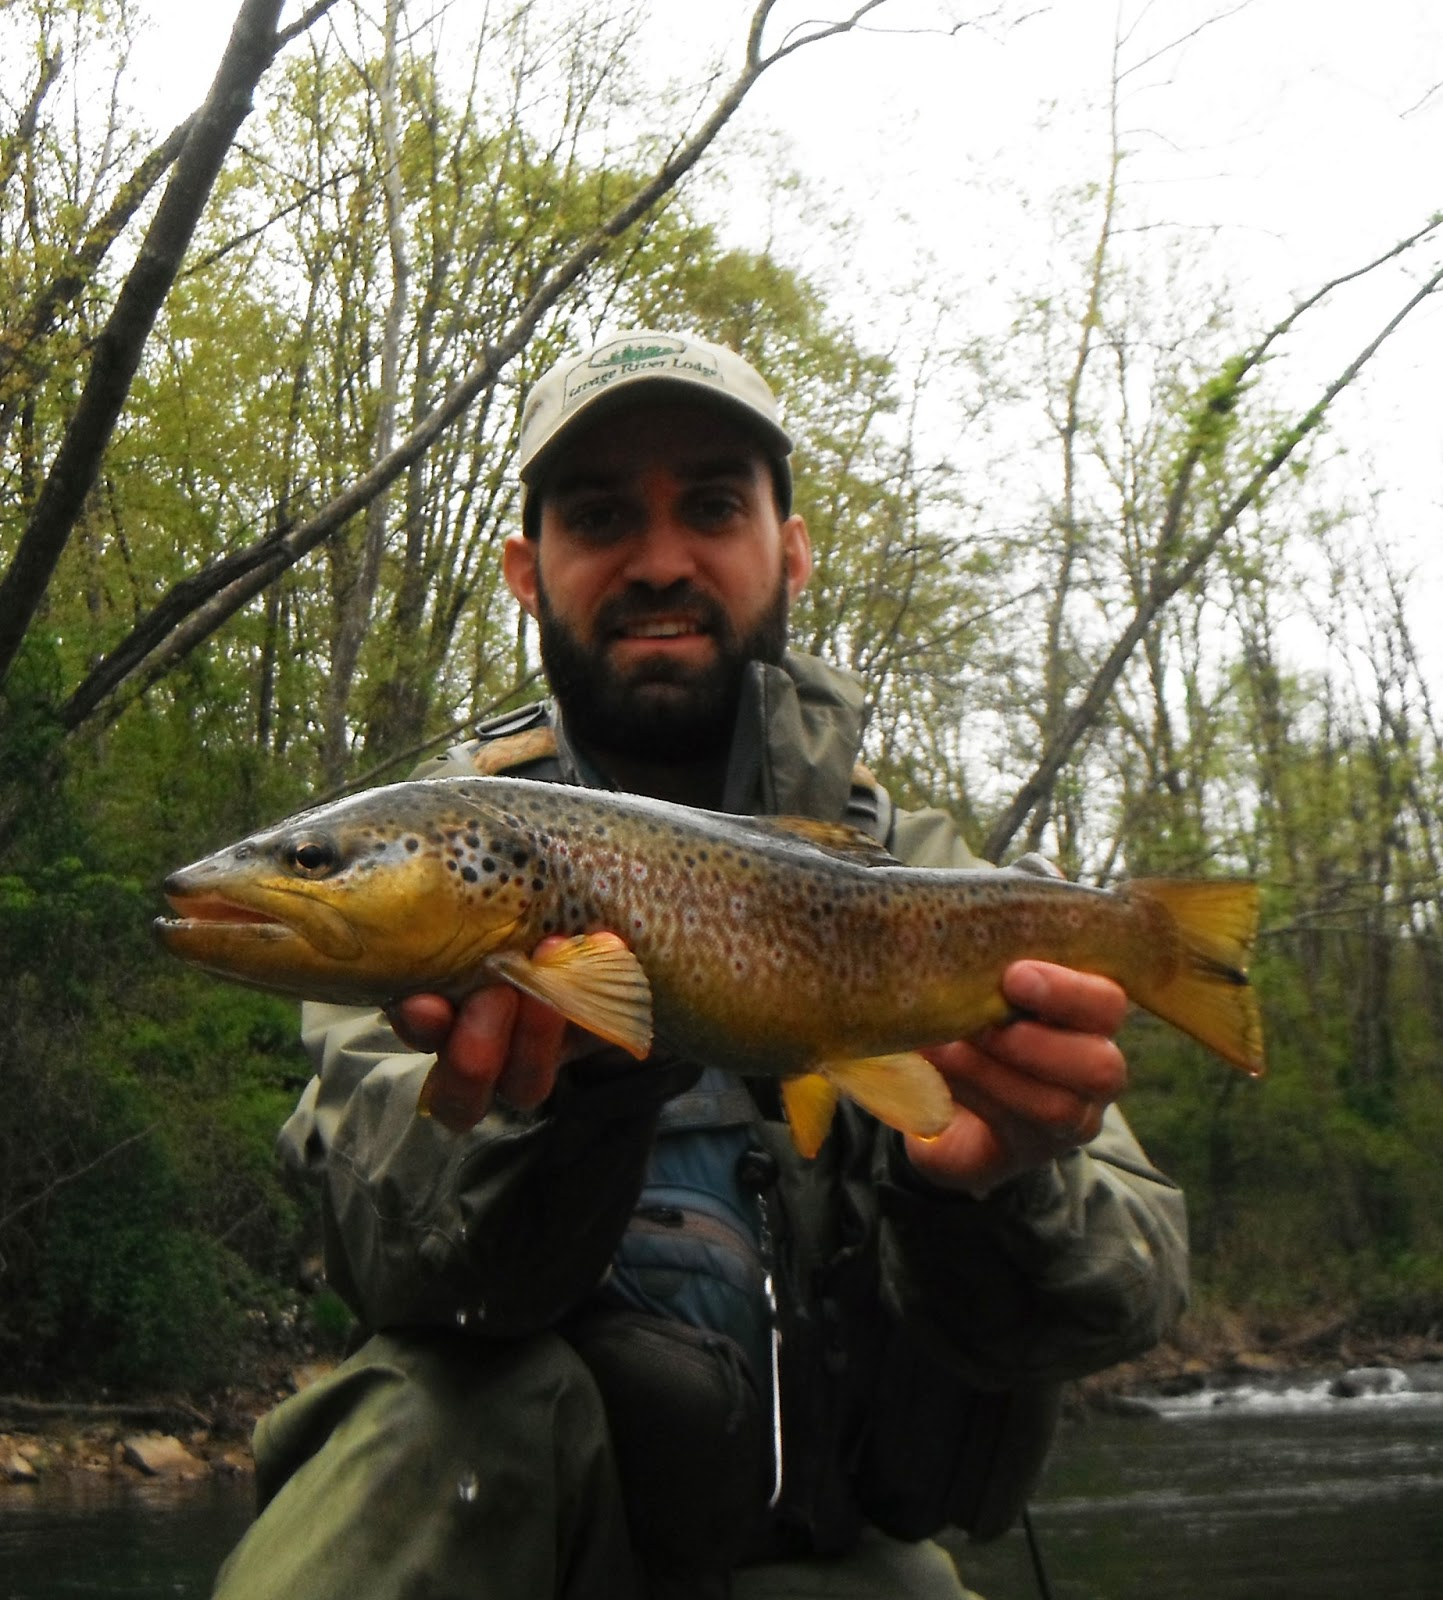 Western maryland fly fishing savage river 04 30 2013 for River trout fishing